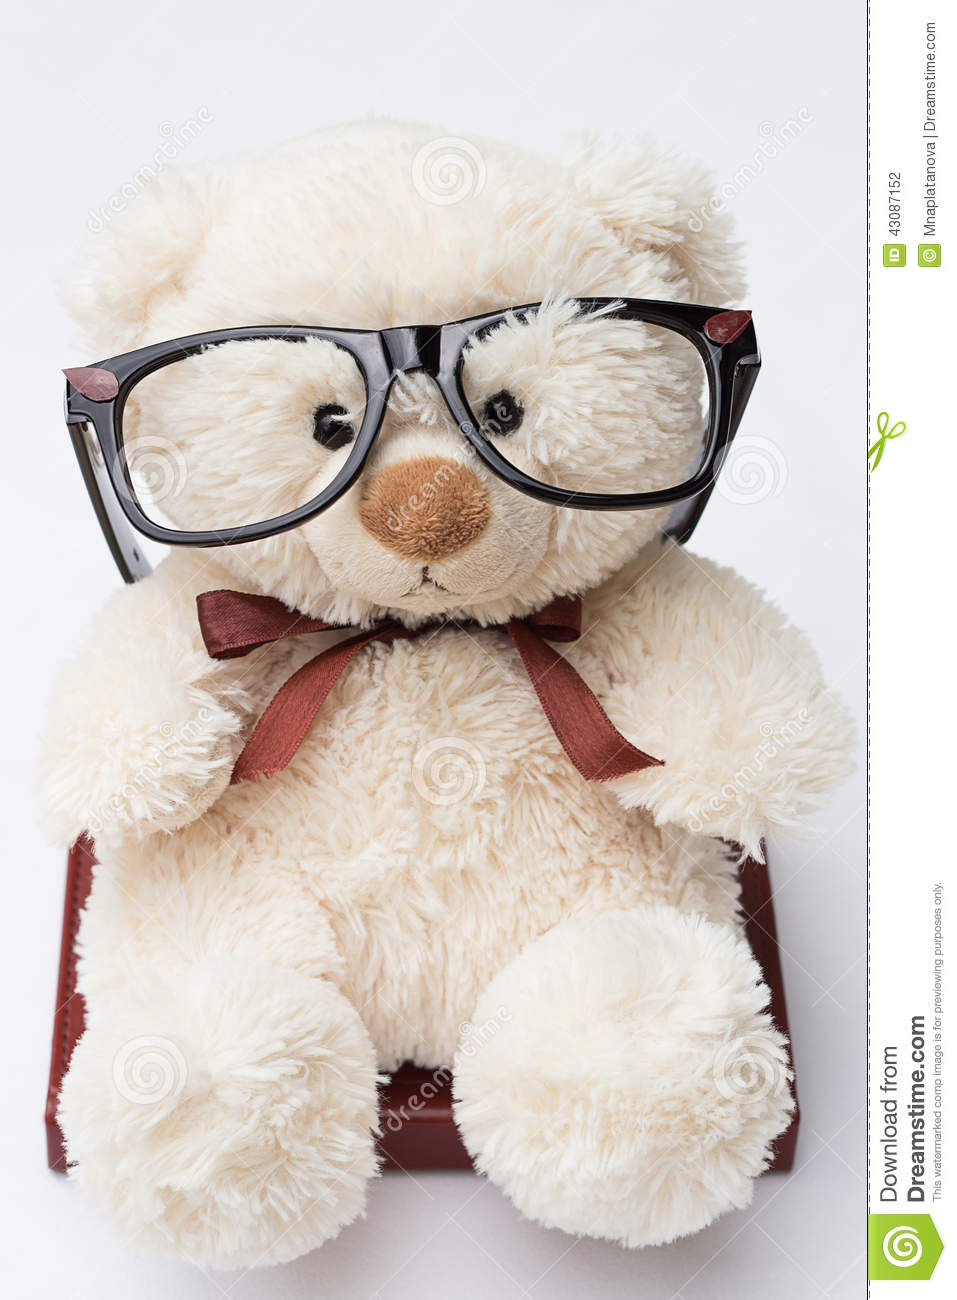 897783f1ba0 Teddy Bear With Glasses Sitting On A Book Stock Photo - Image of ...